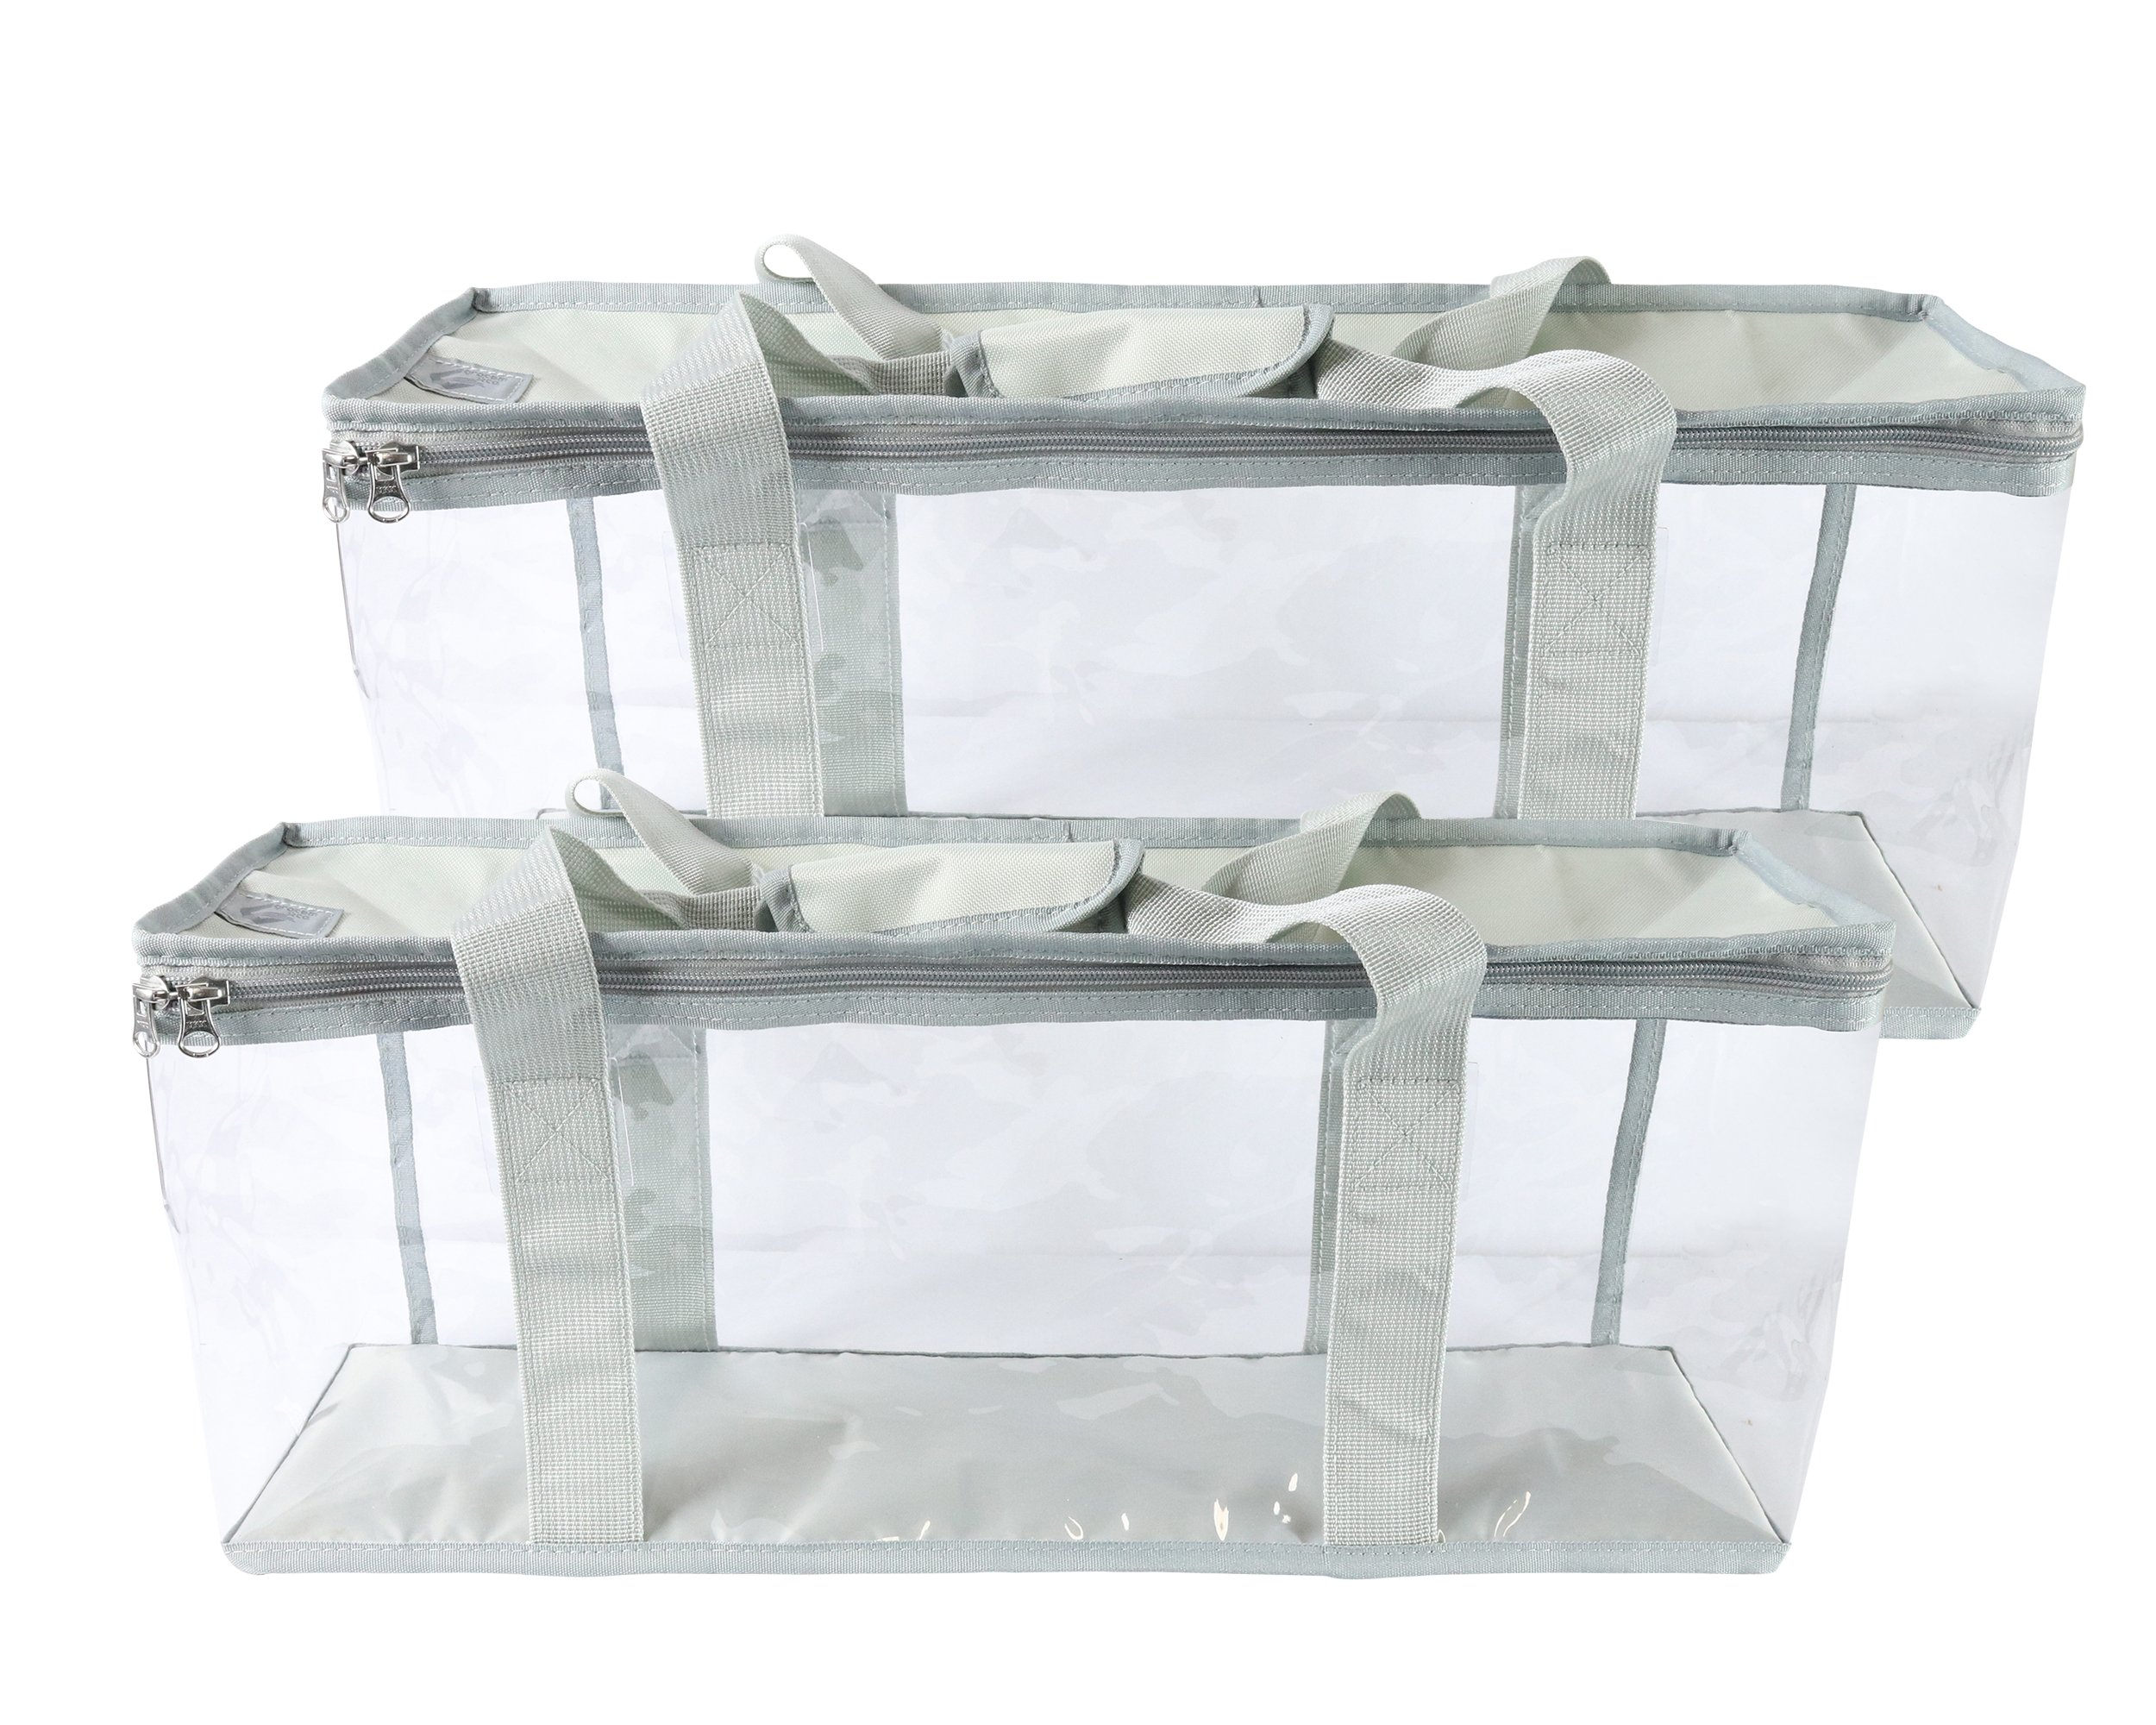 Clear View DVD Blu-Ray Storage Bags – Best Large Capacity Portable Media Organizer Cases For Carrying Film Discs, Home Movies, Video Games – Transparent Lightweight Plastic Zip Totes